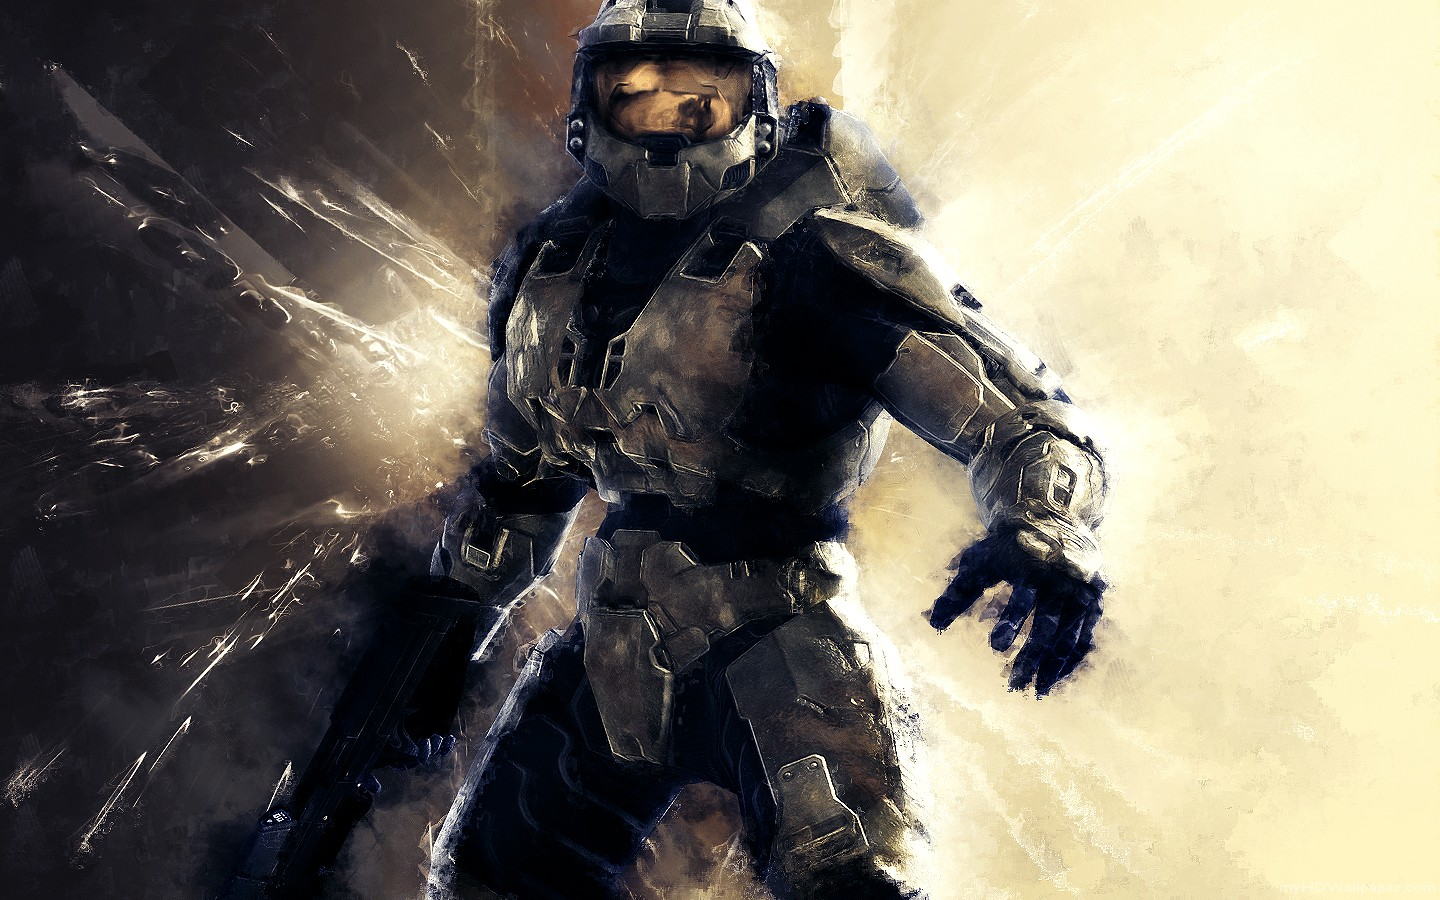 halo wallpaper background bungie xbox microsoft fps first person 1440x900